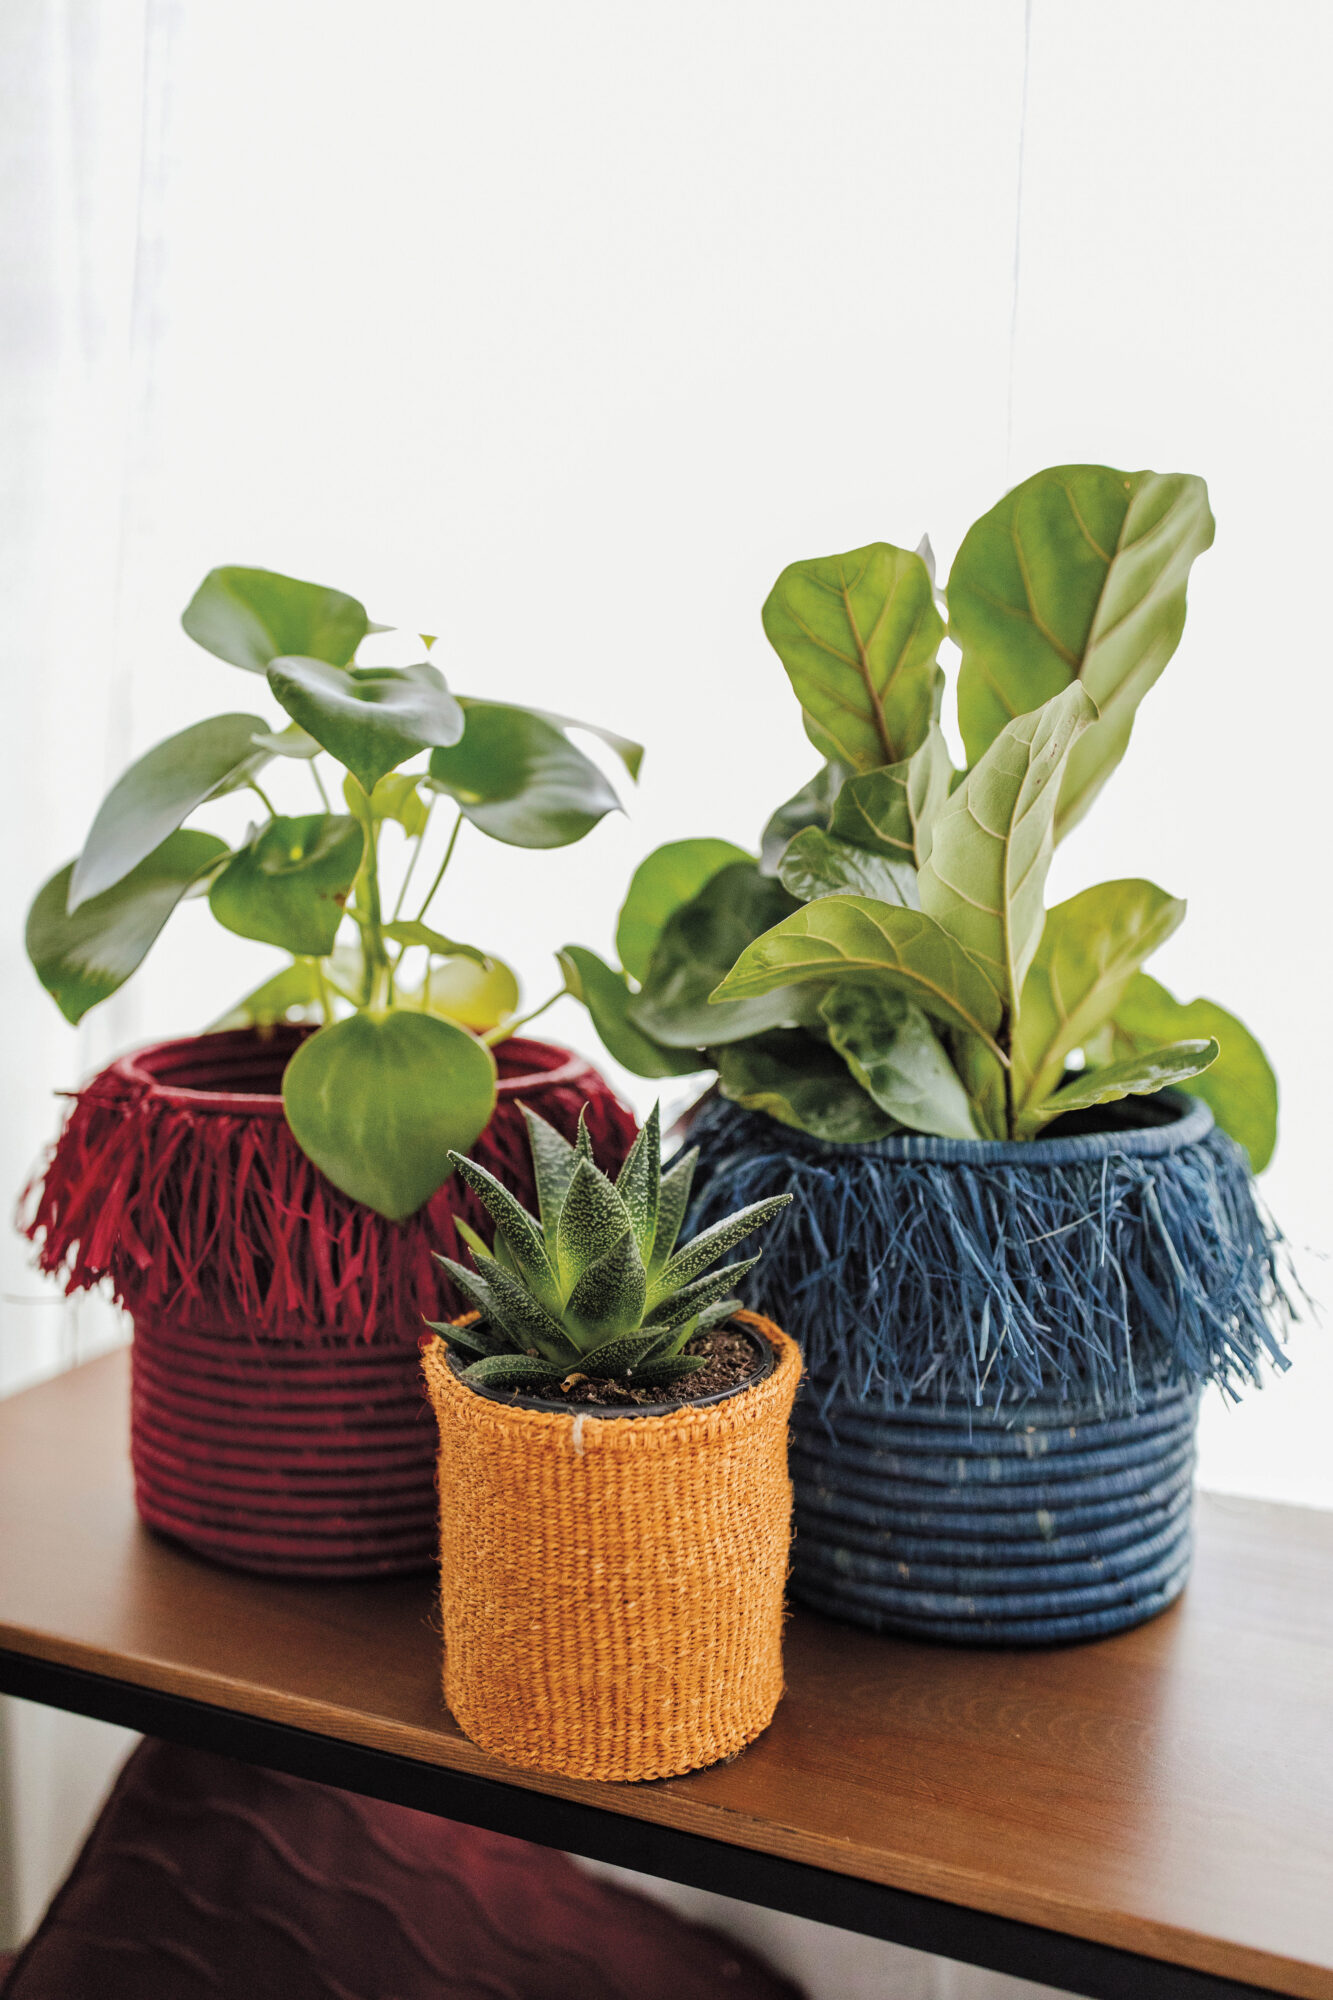 Three soften woven plant bots with plants